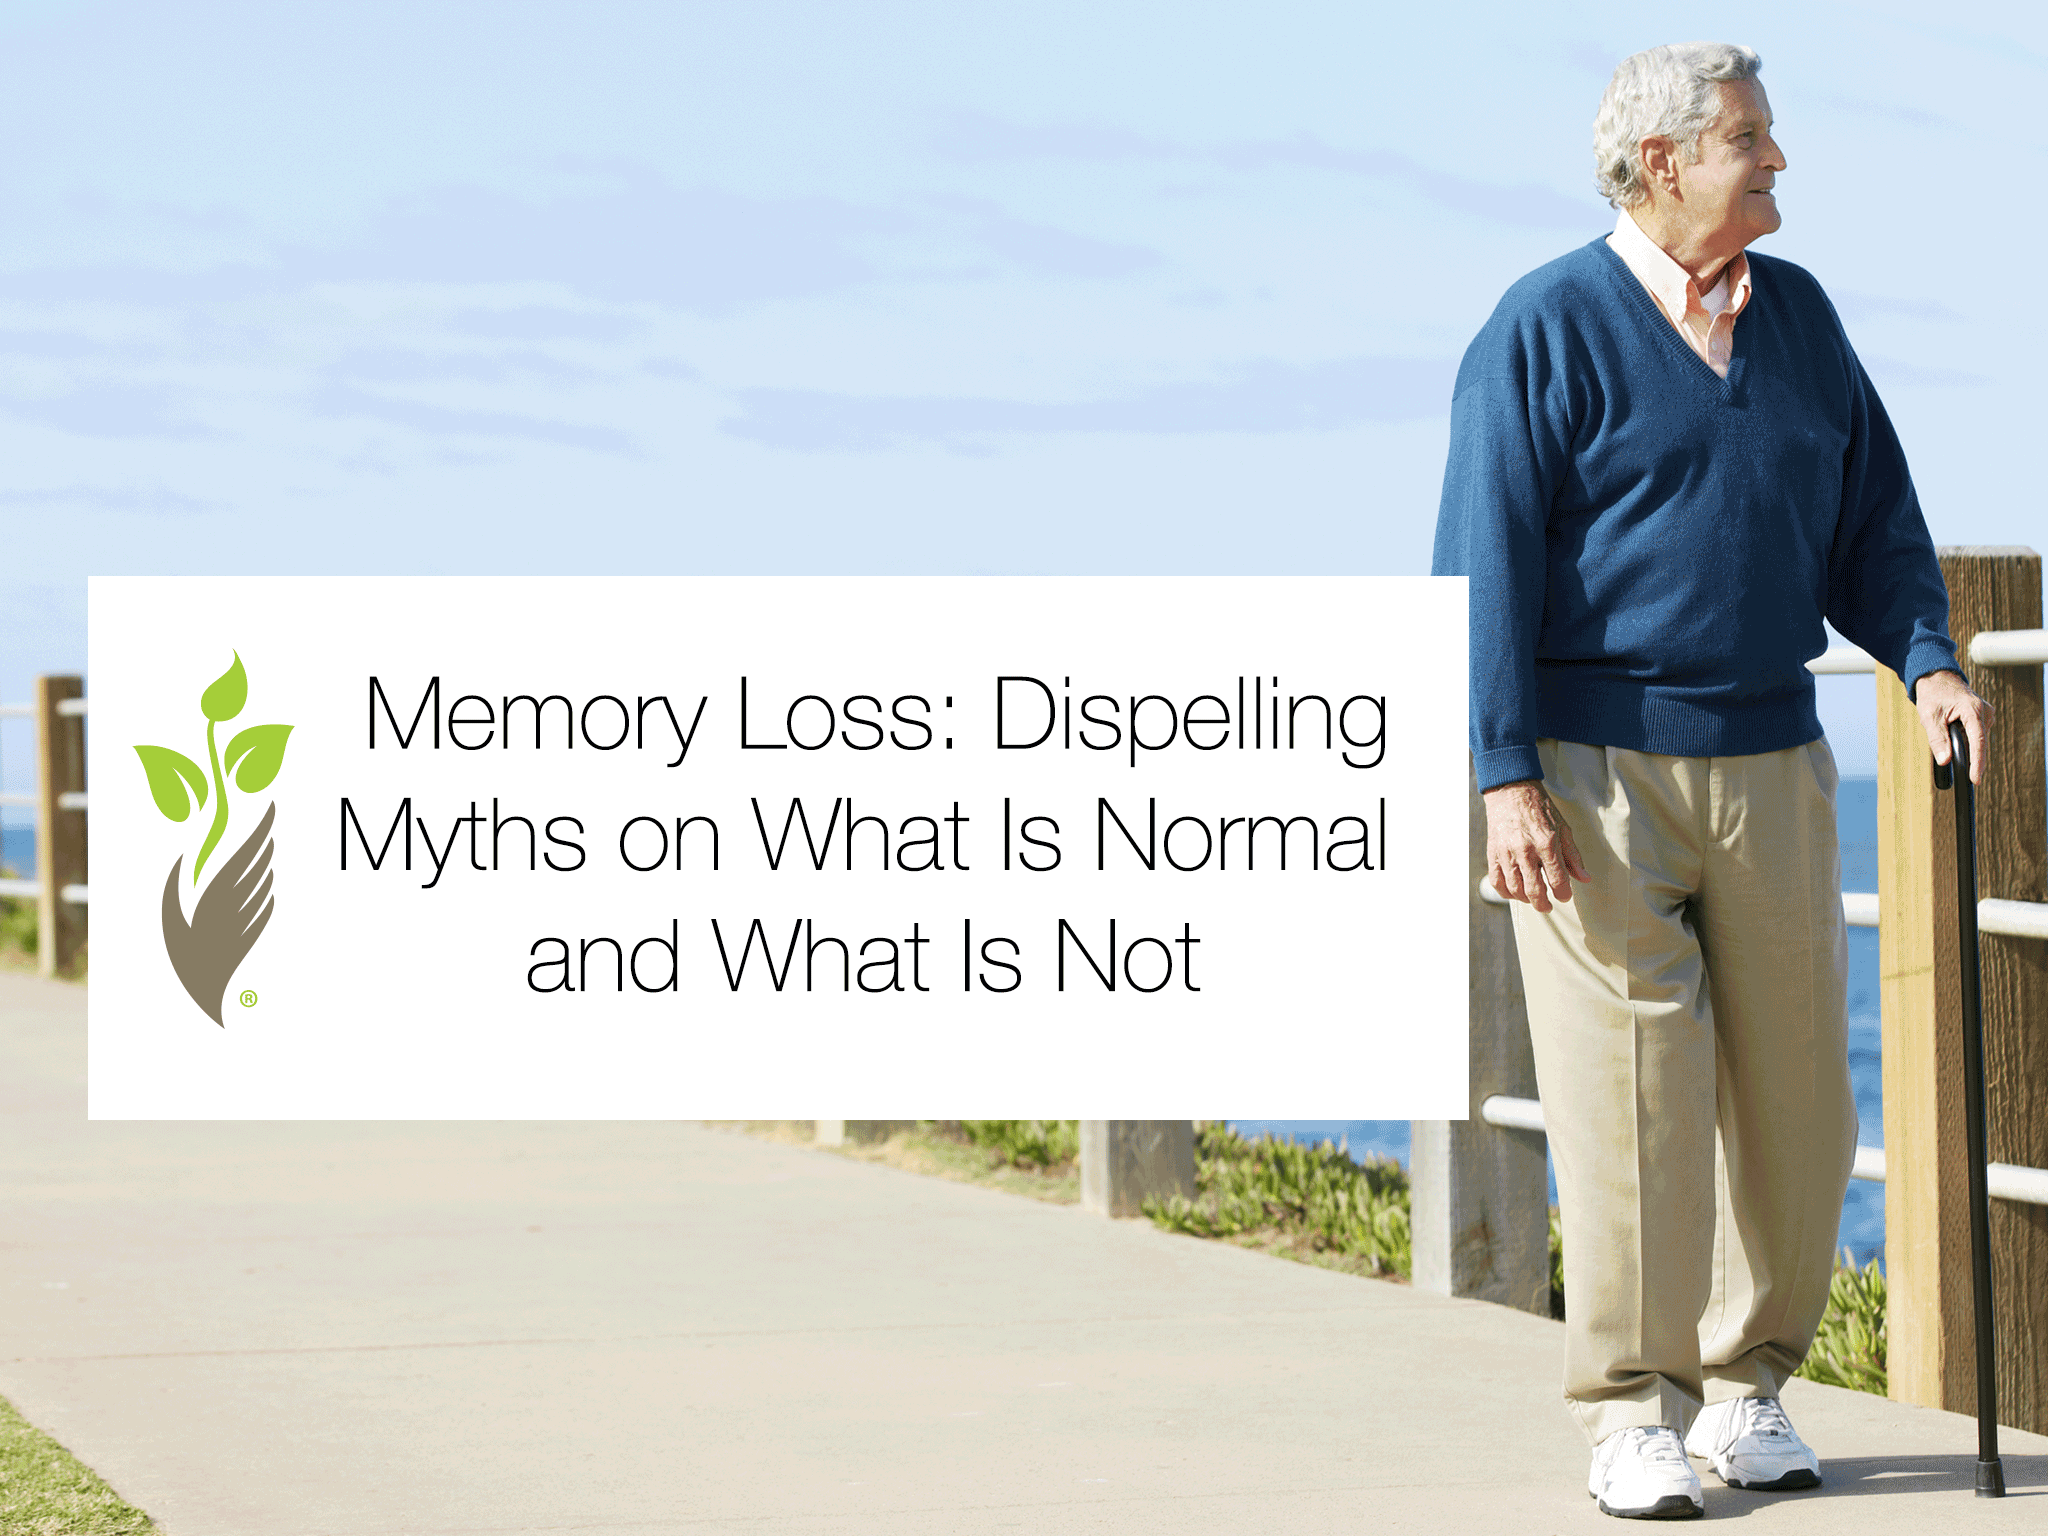 Memory Loss: Dispelling Myths on What Is Normal and What Is Not